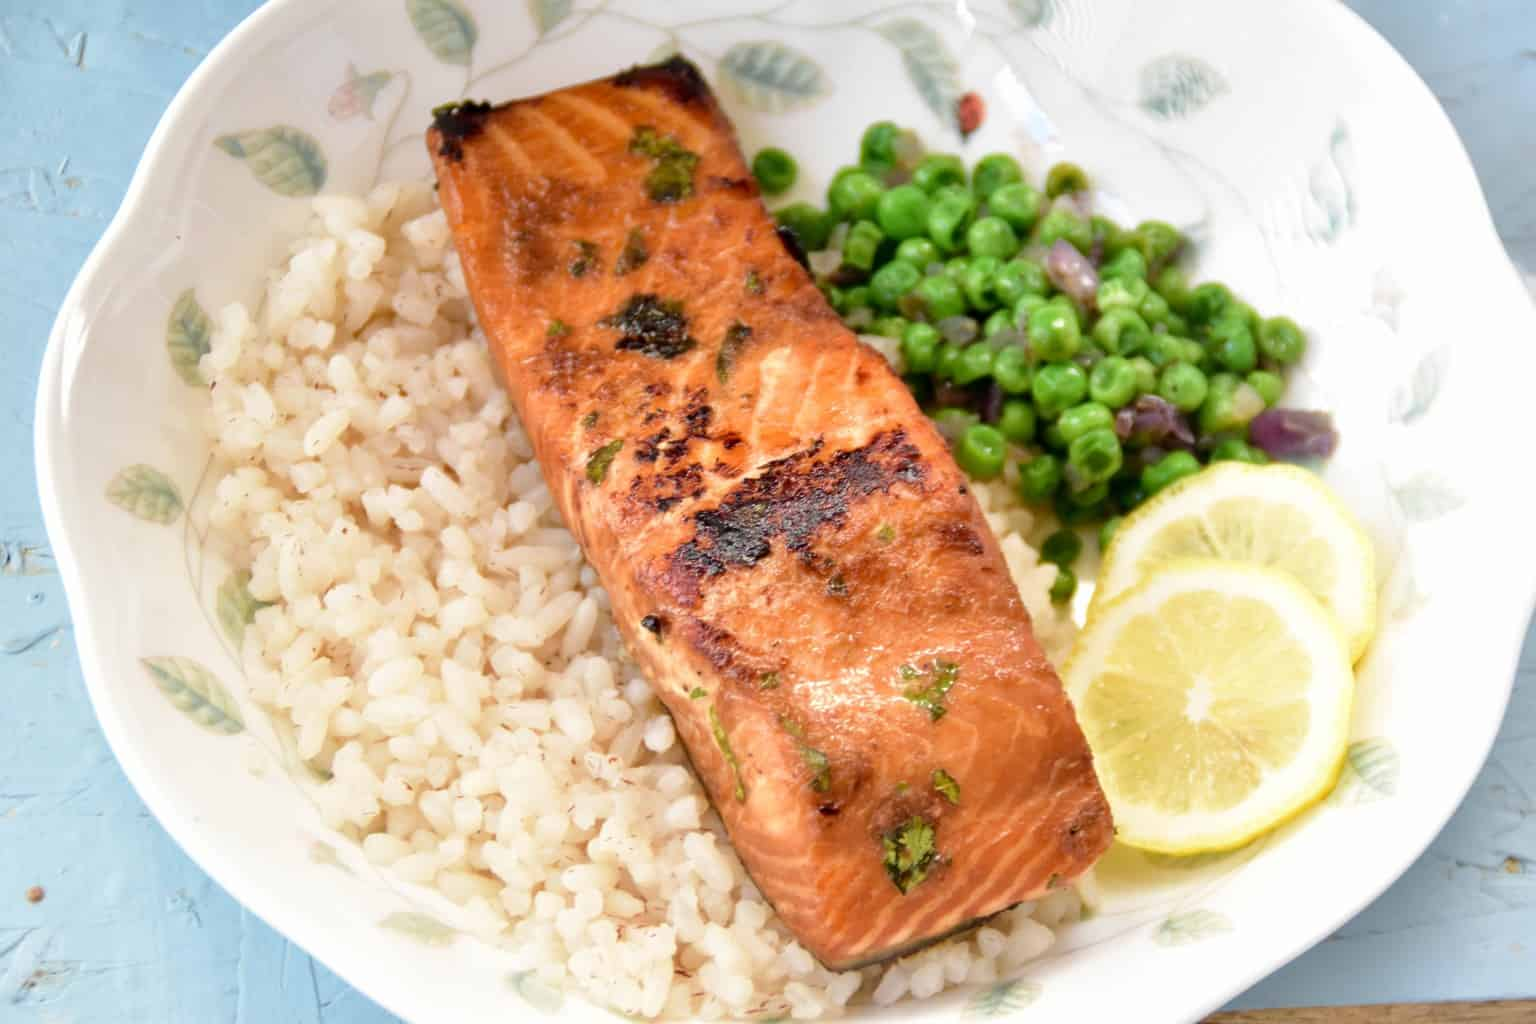 """<img src=""""https://cdn.shortpixel.ai/client/q_glossy,ret_img,w_1536,h_1024/sous vide salmon.jpg"""" alt=""""sous vide salmon with ginger and soy sauce marinade"""">"""